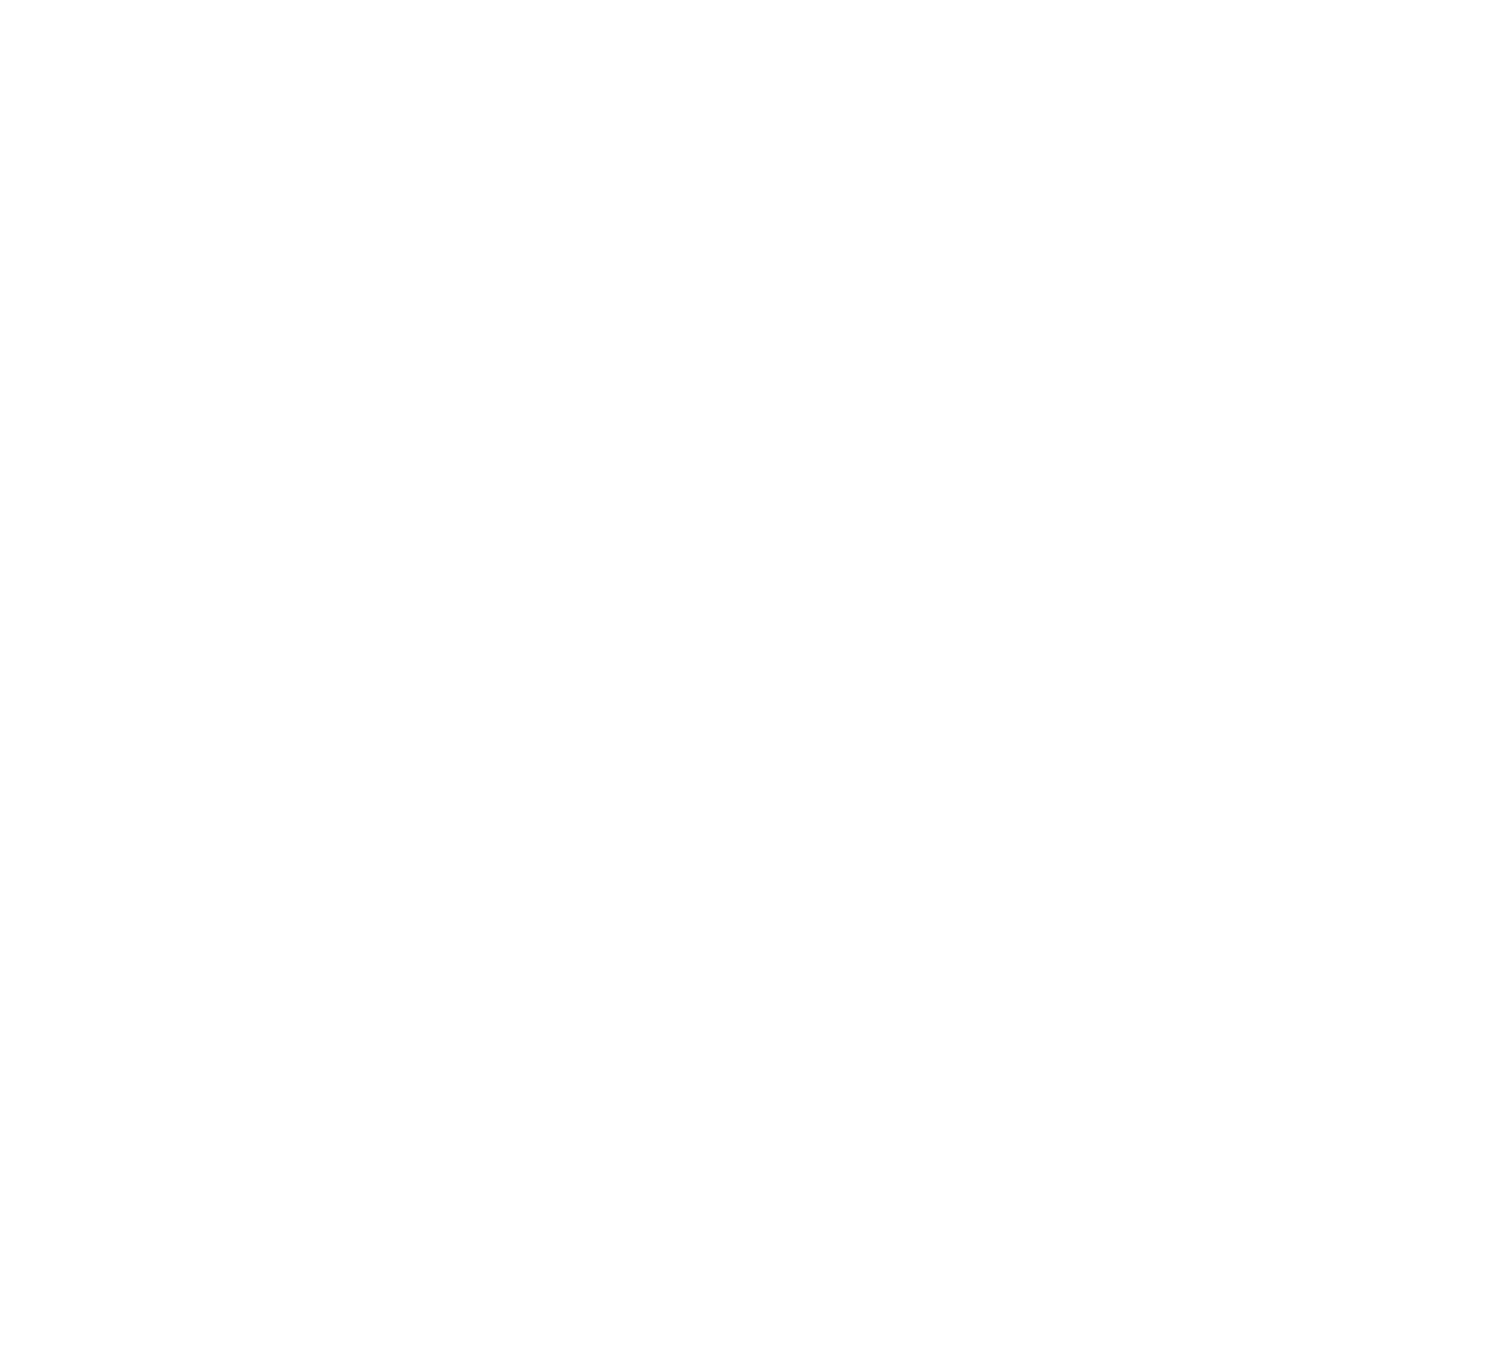 Bartonville Christian Church